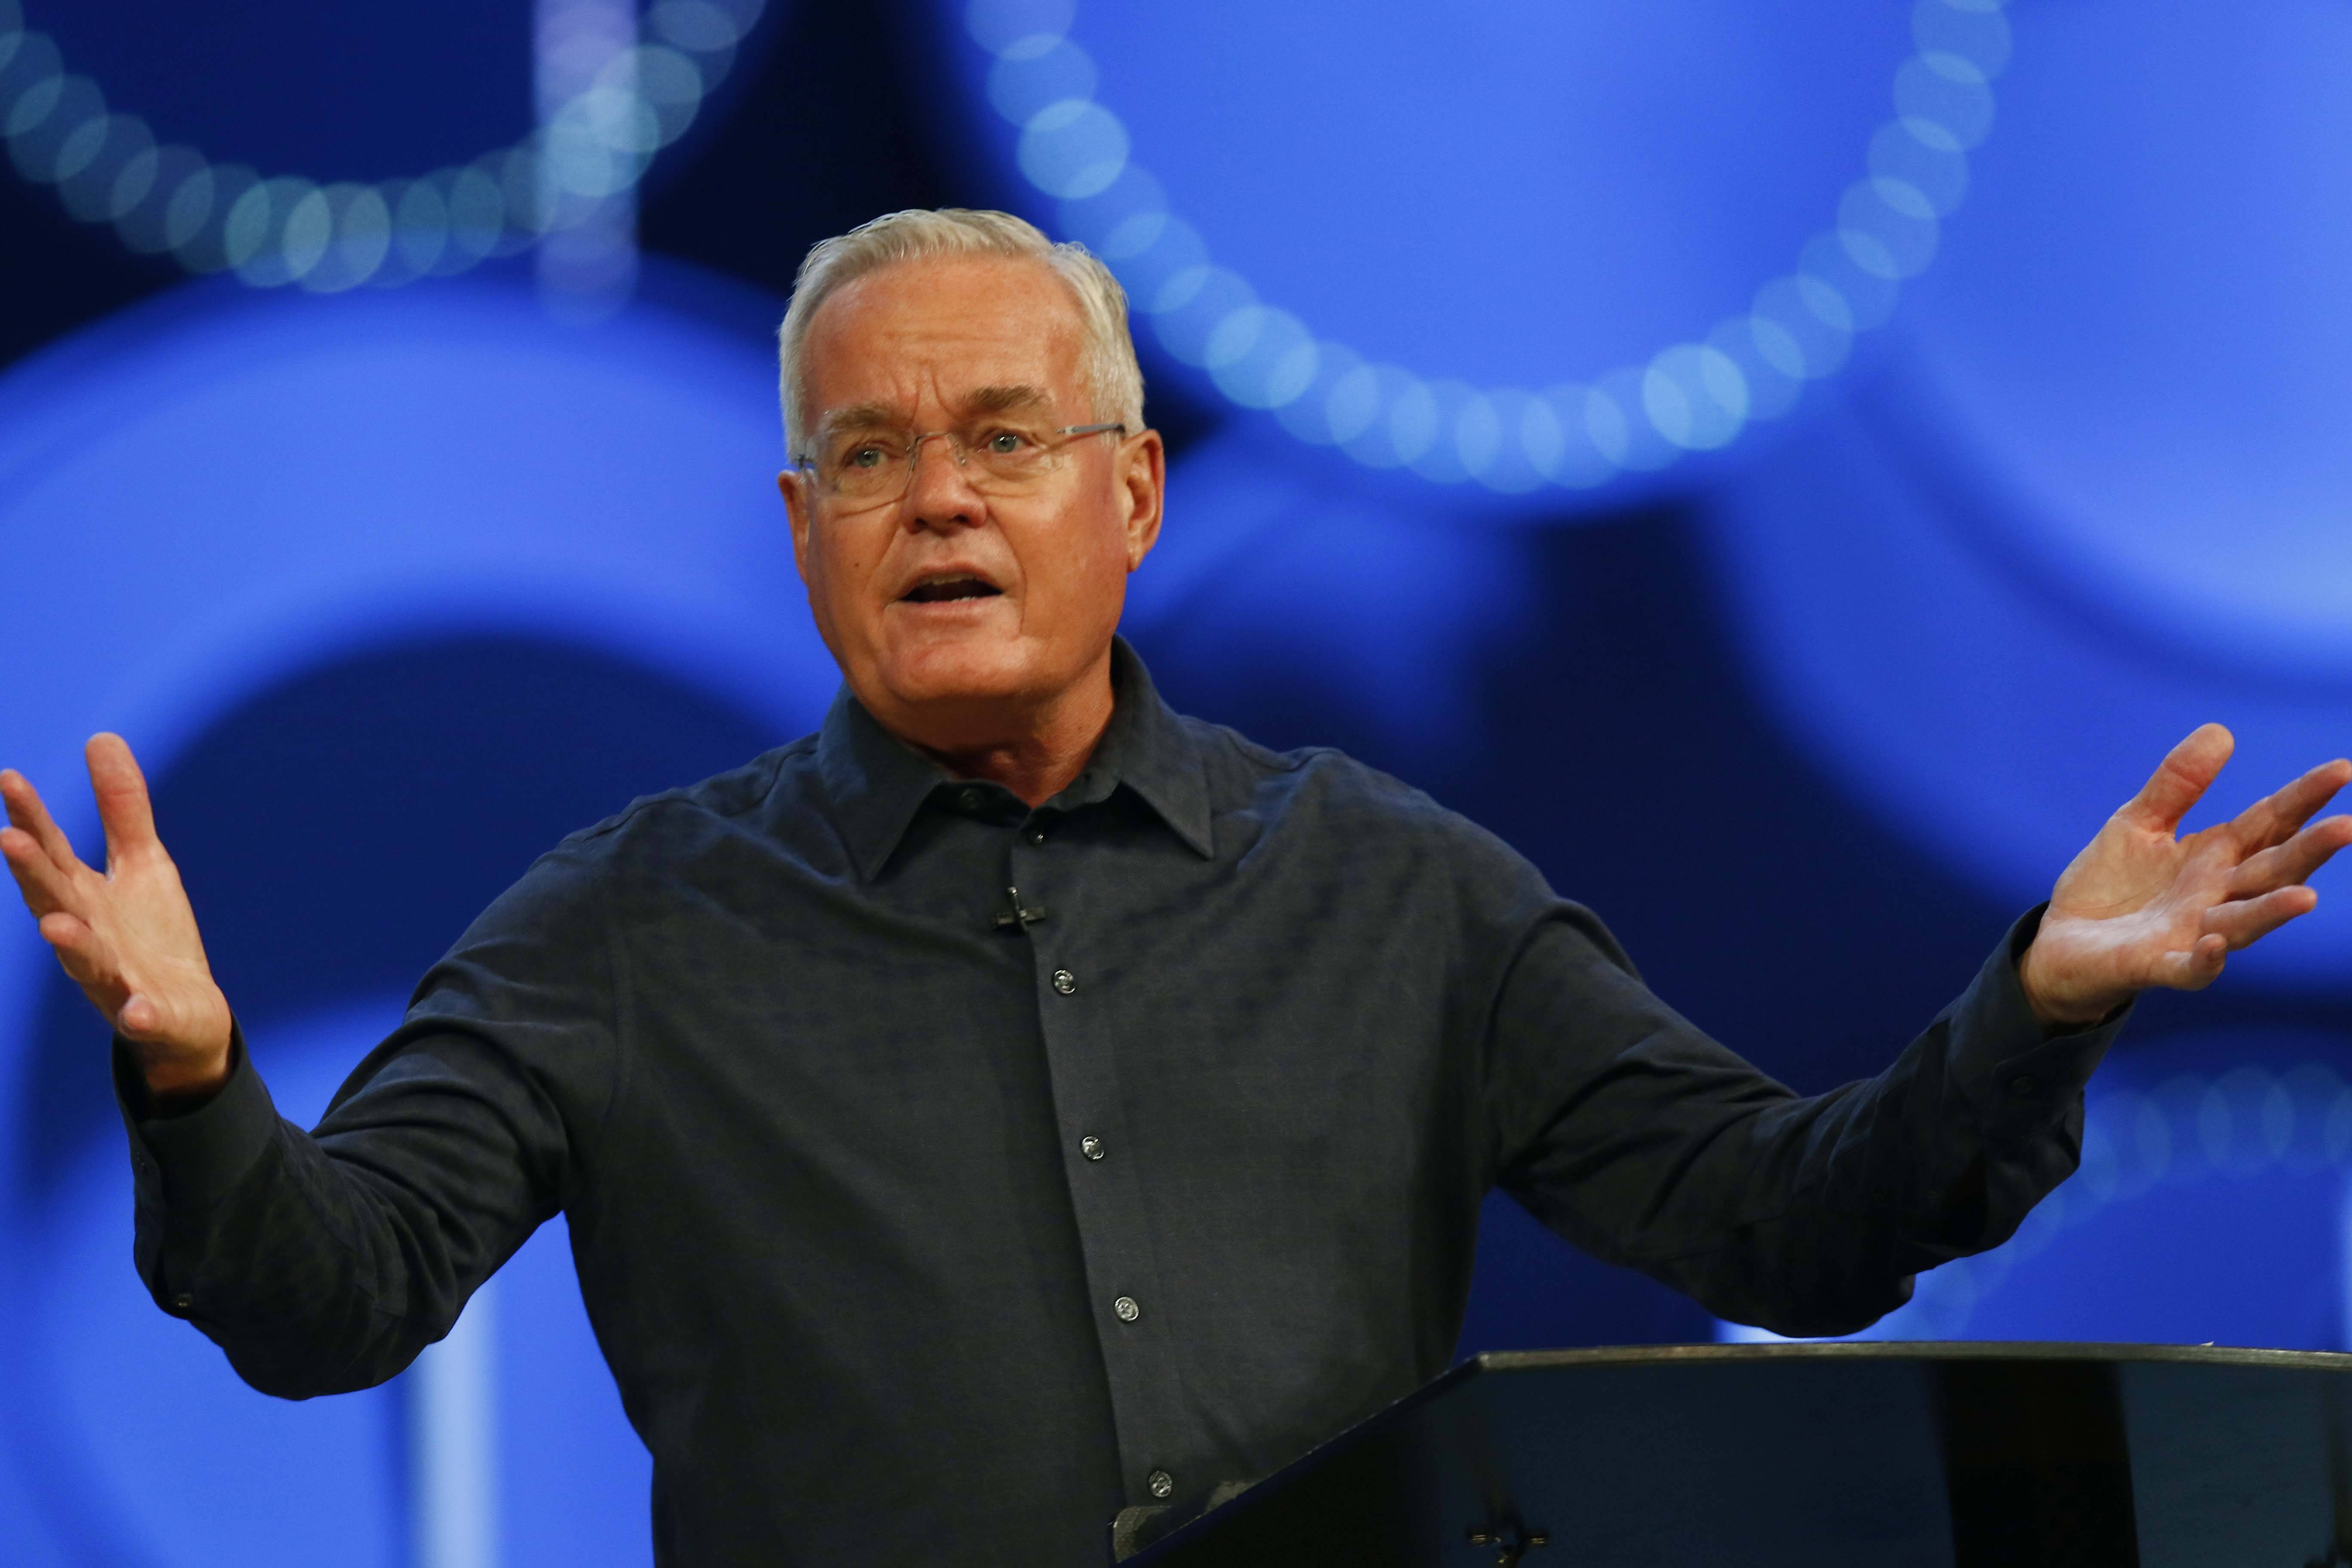 Willow Creek board leader says Hybels made inappropriate choices